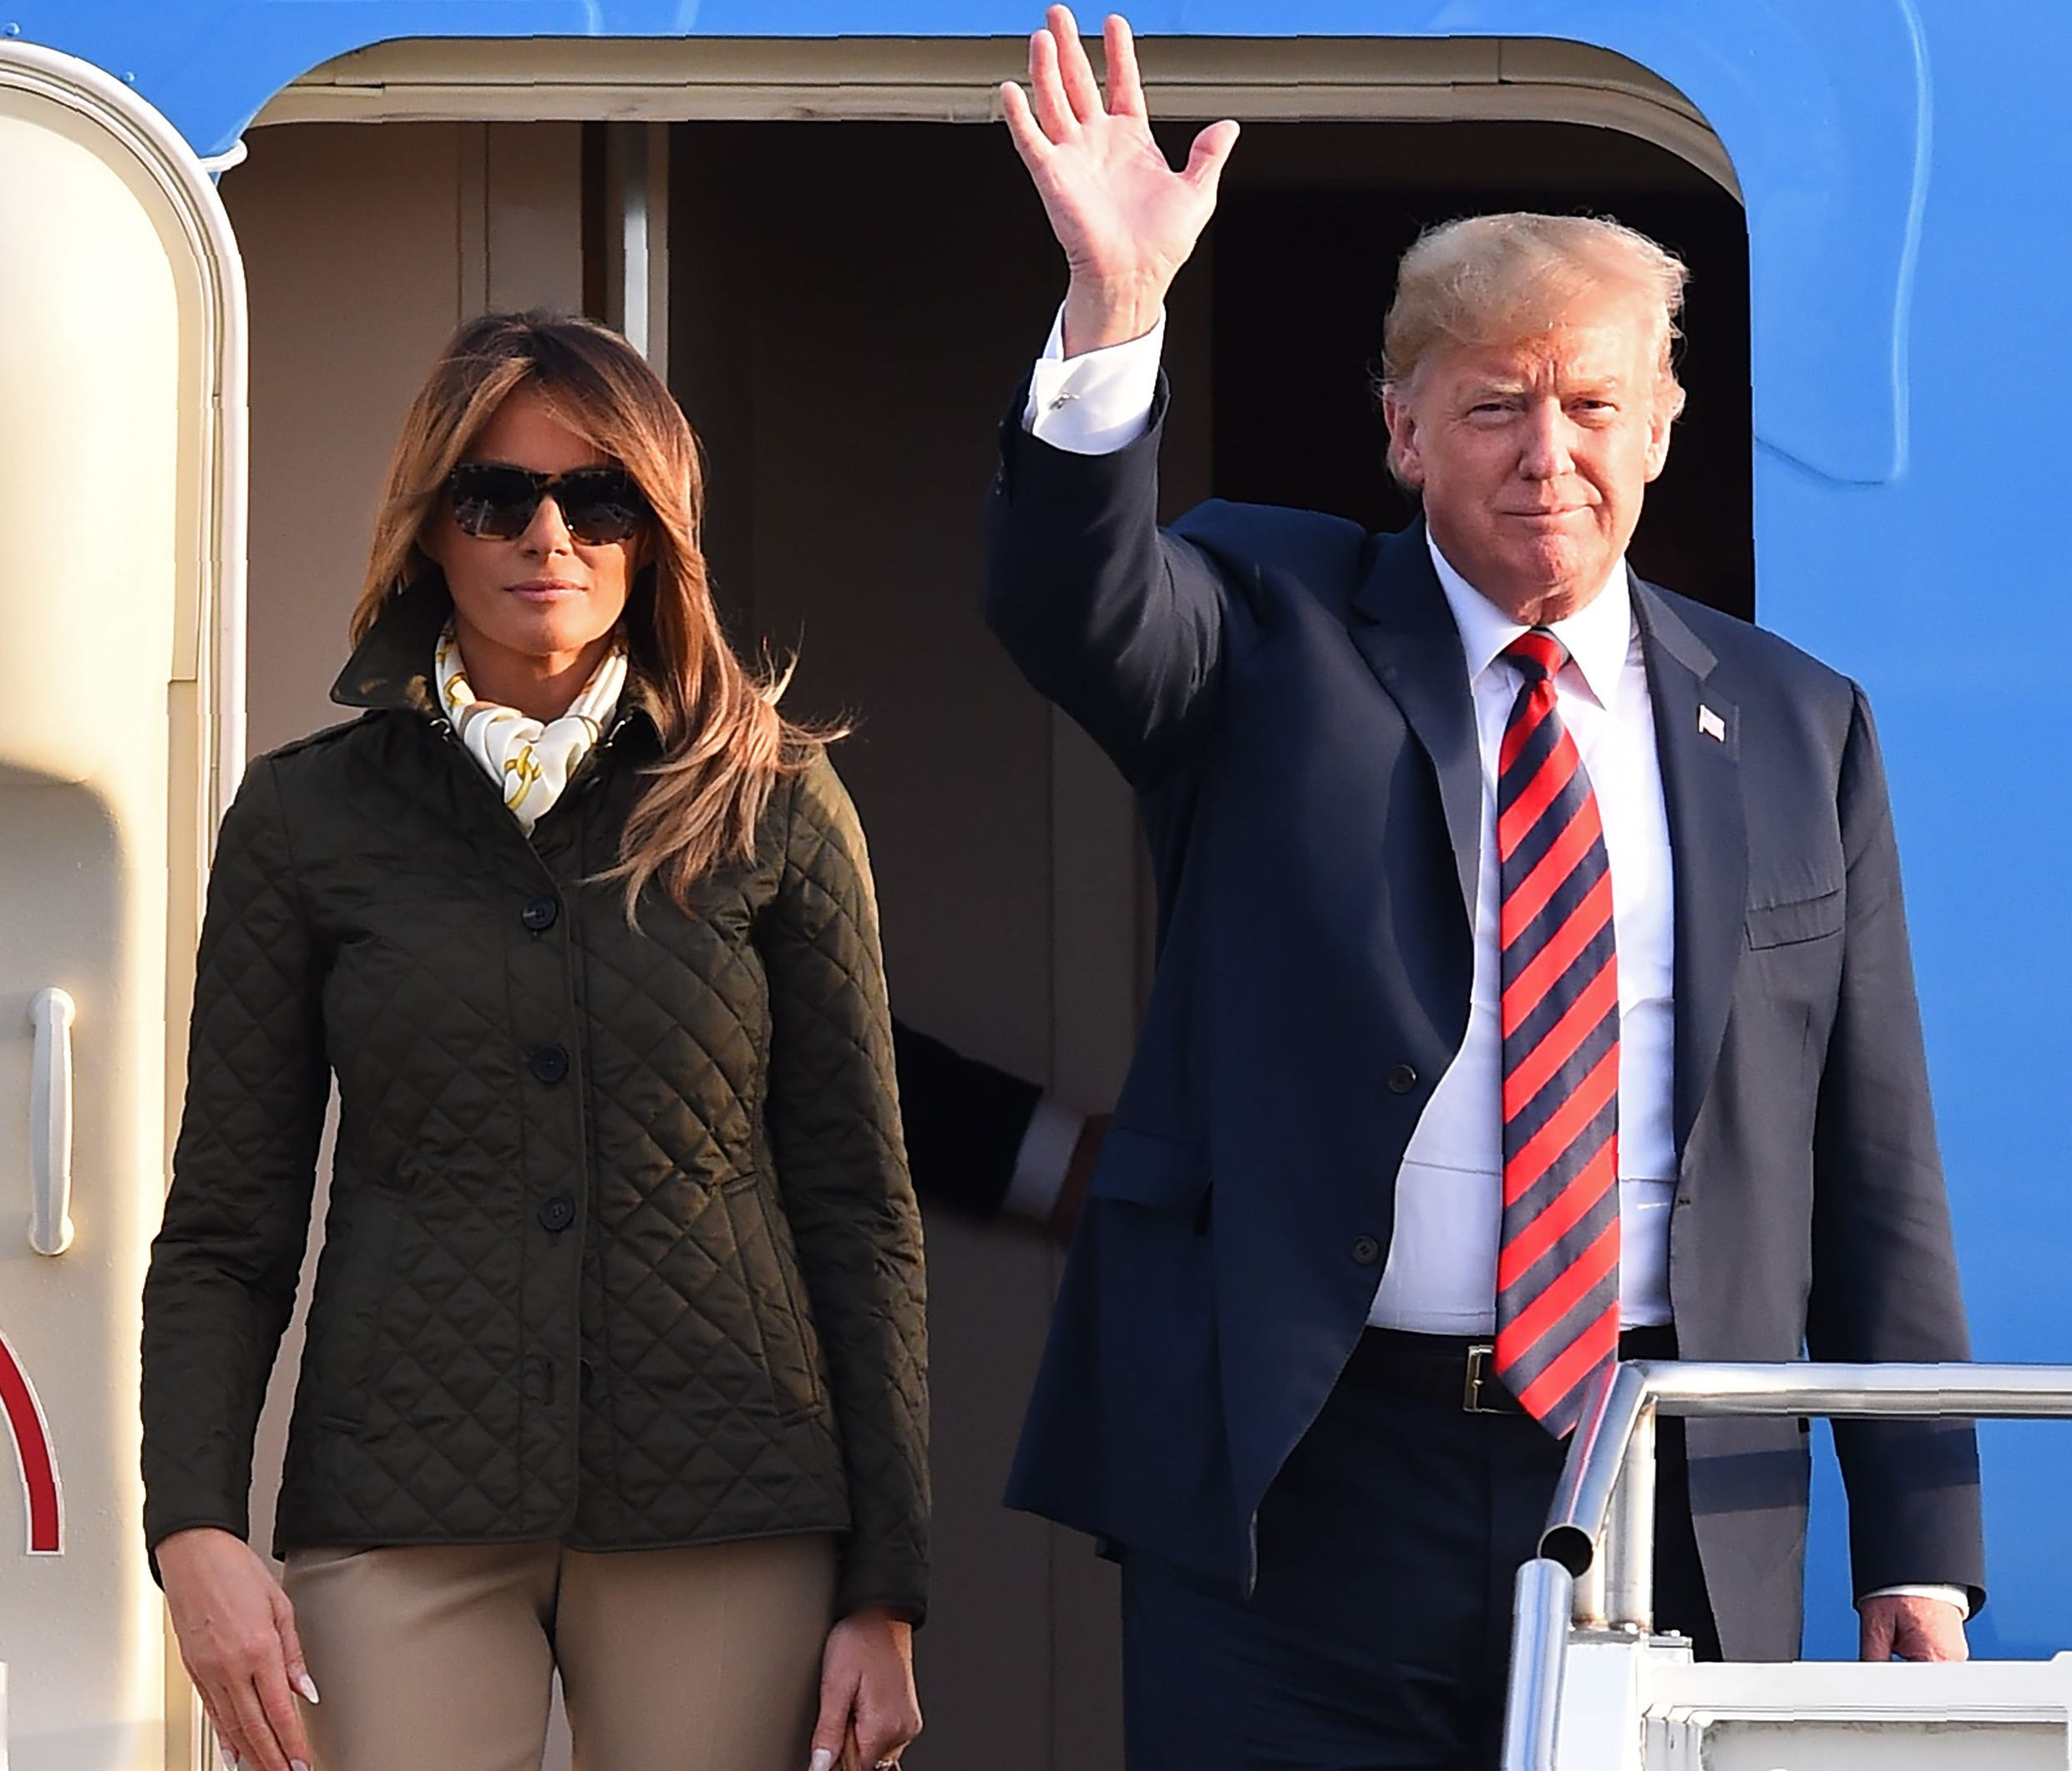 President Donald Trump waves as he disembarks Air Force One with first lady Melania Trump at Prestwick Airport, south of Glasgow.